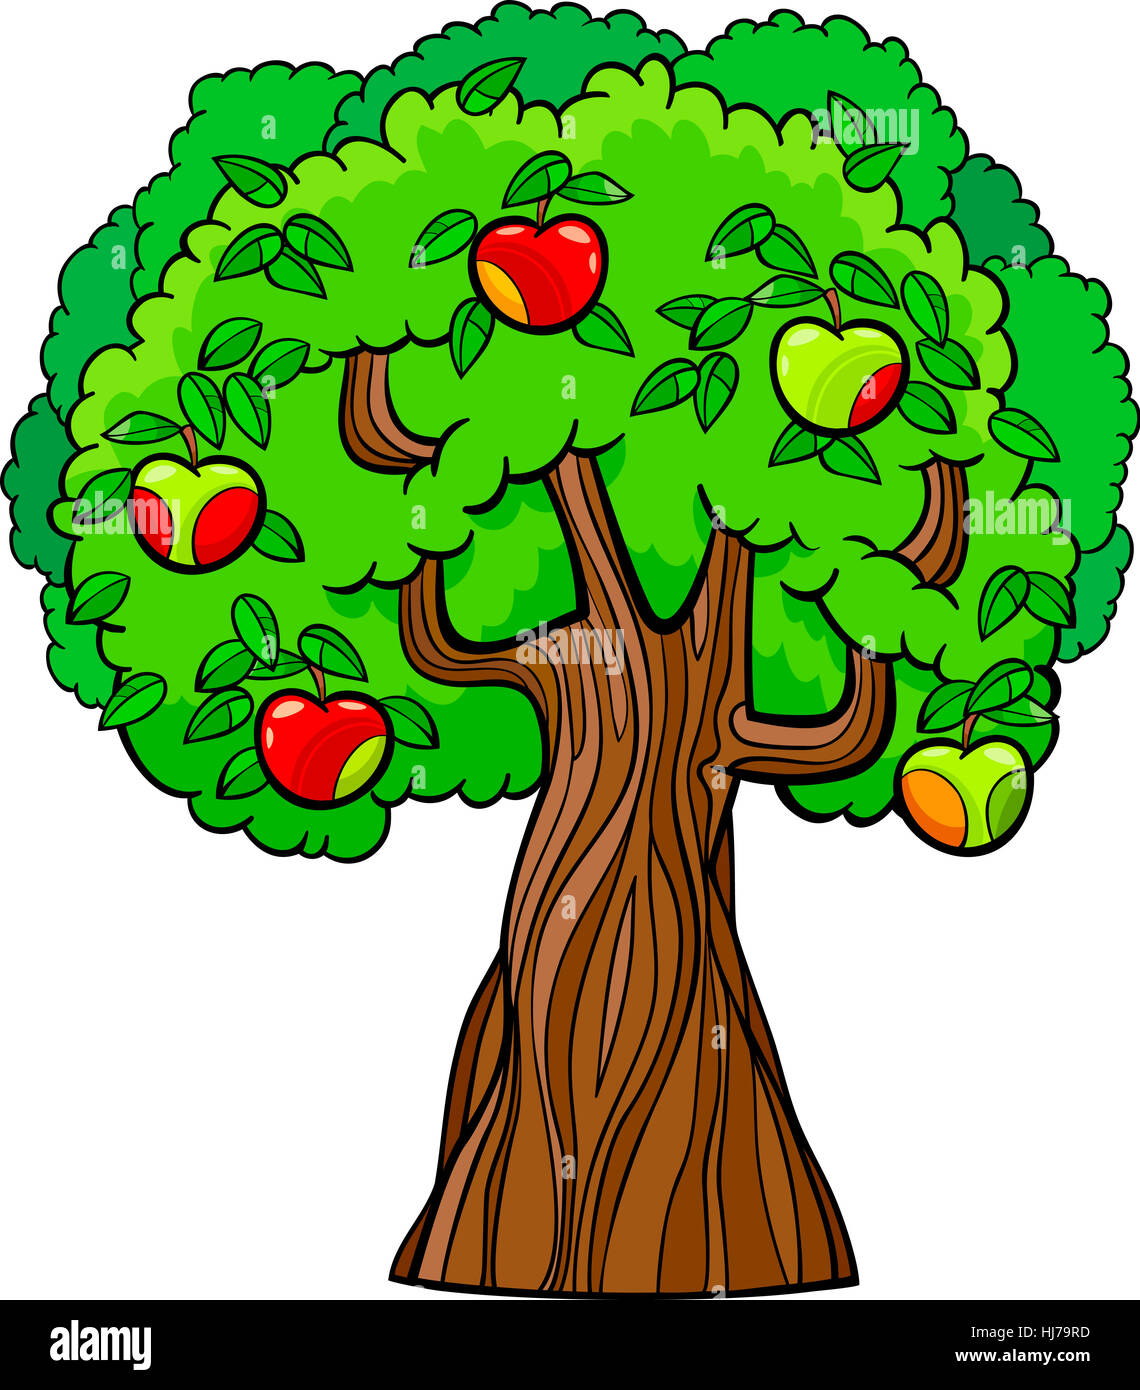 Tree Apple Tree Illustration Fruit Cartoon Apple Trunk Food Stock Photo Alamy These cartoon tree branches not only make your decor seem aesthetically appealing but also give you a feeling of greenery all around you. https www alamy com stock photo tree apple tree illustration fruit cartoon apple trunk food aliment 131697761 html